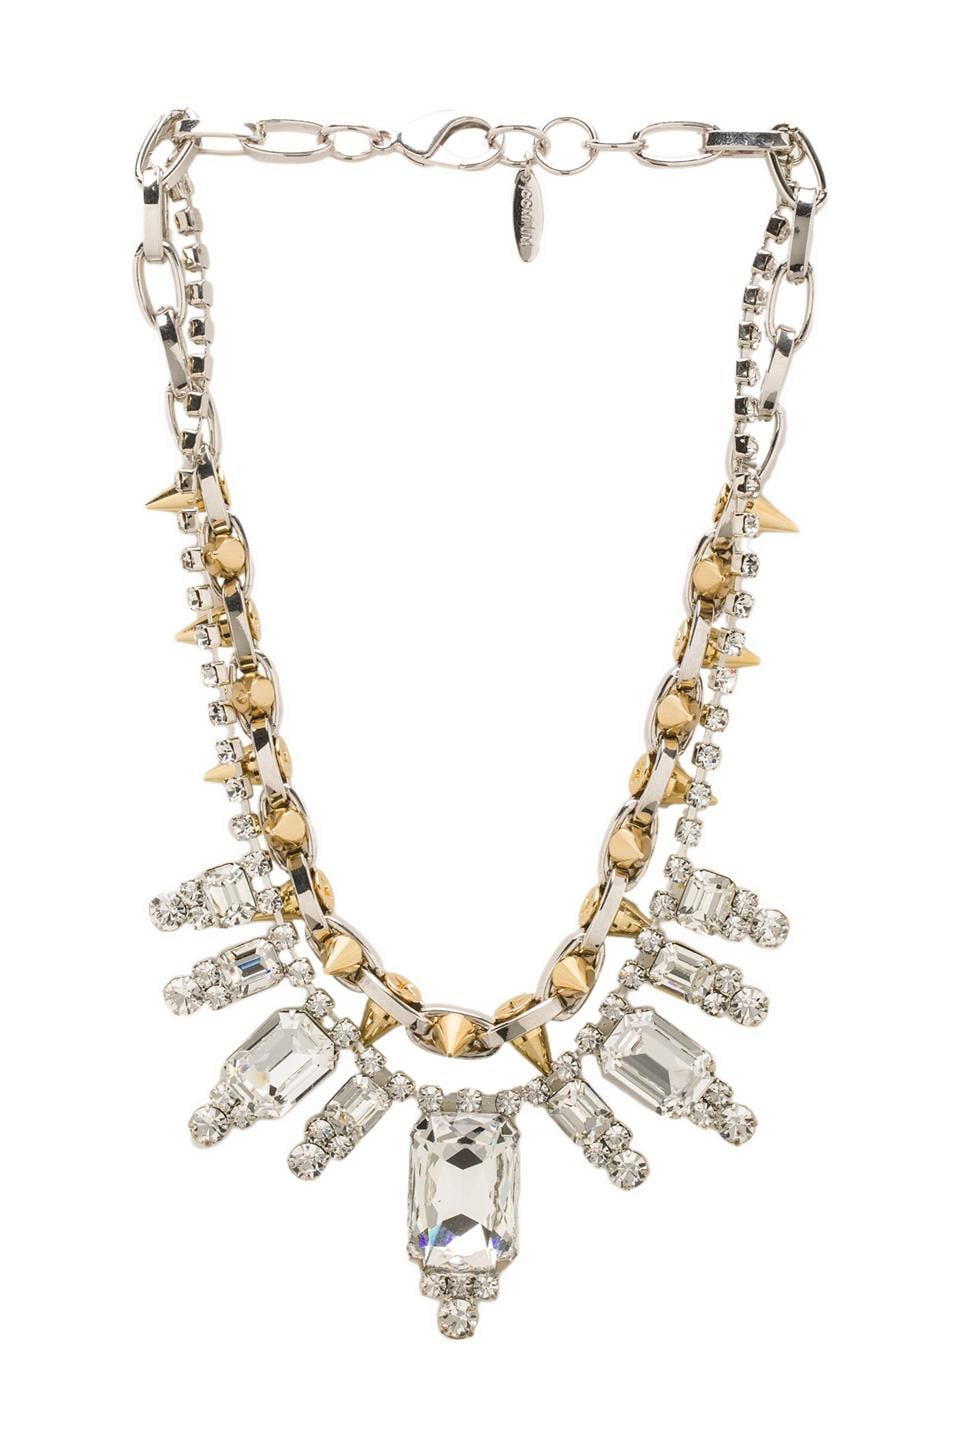 JOOMI LIM Baroque Crystal & Spike Necklace in Crystal/Rhodium/Gold Spikes